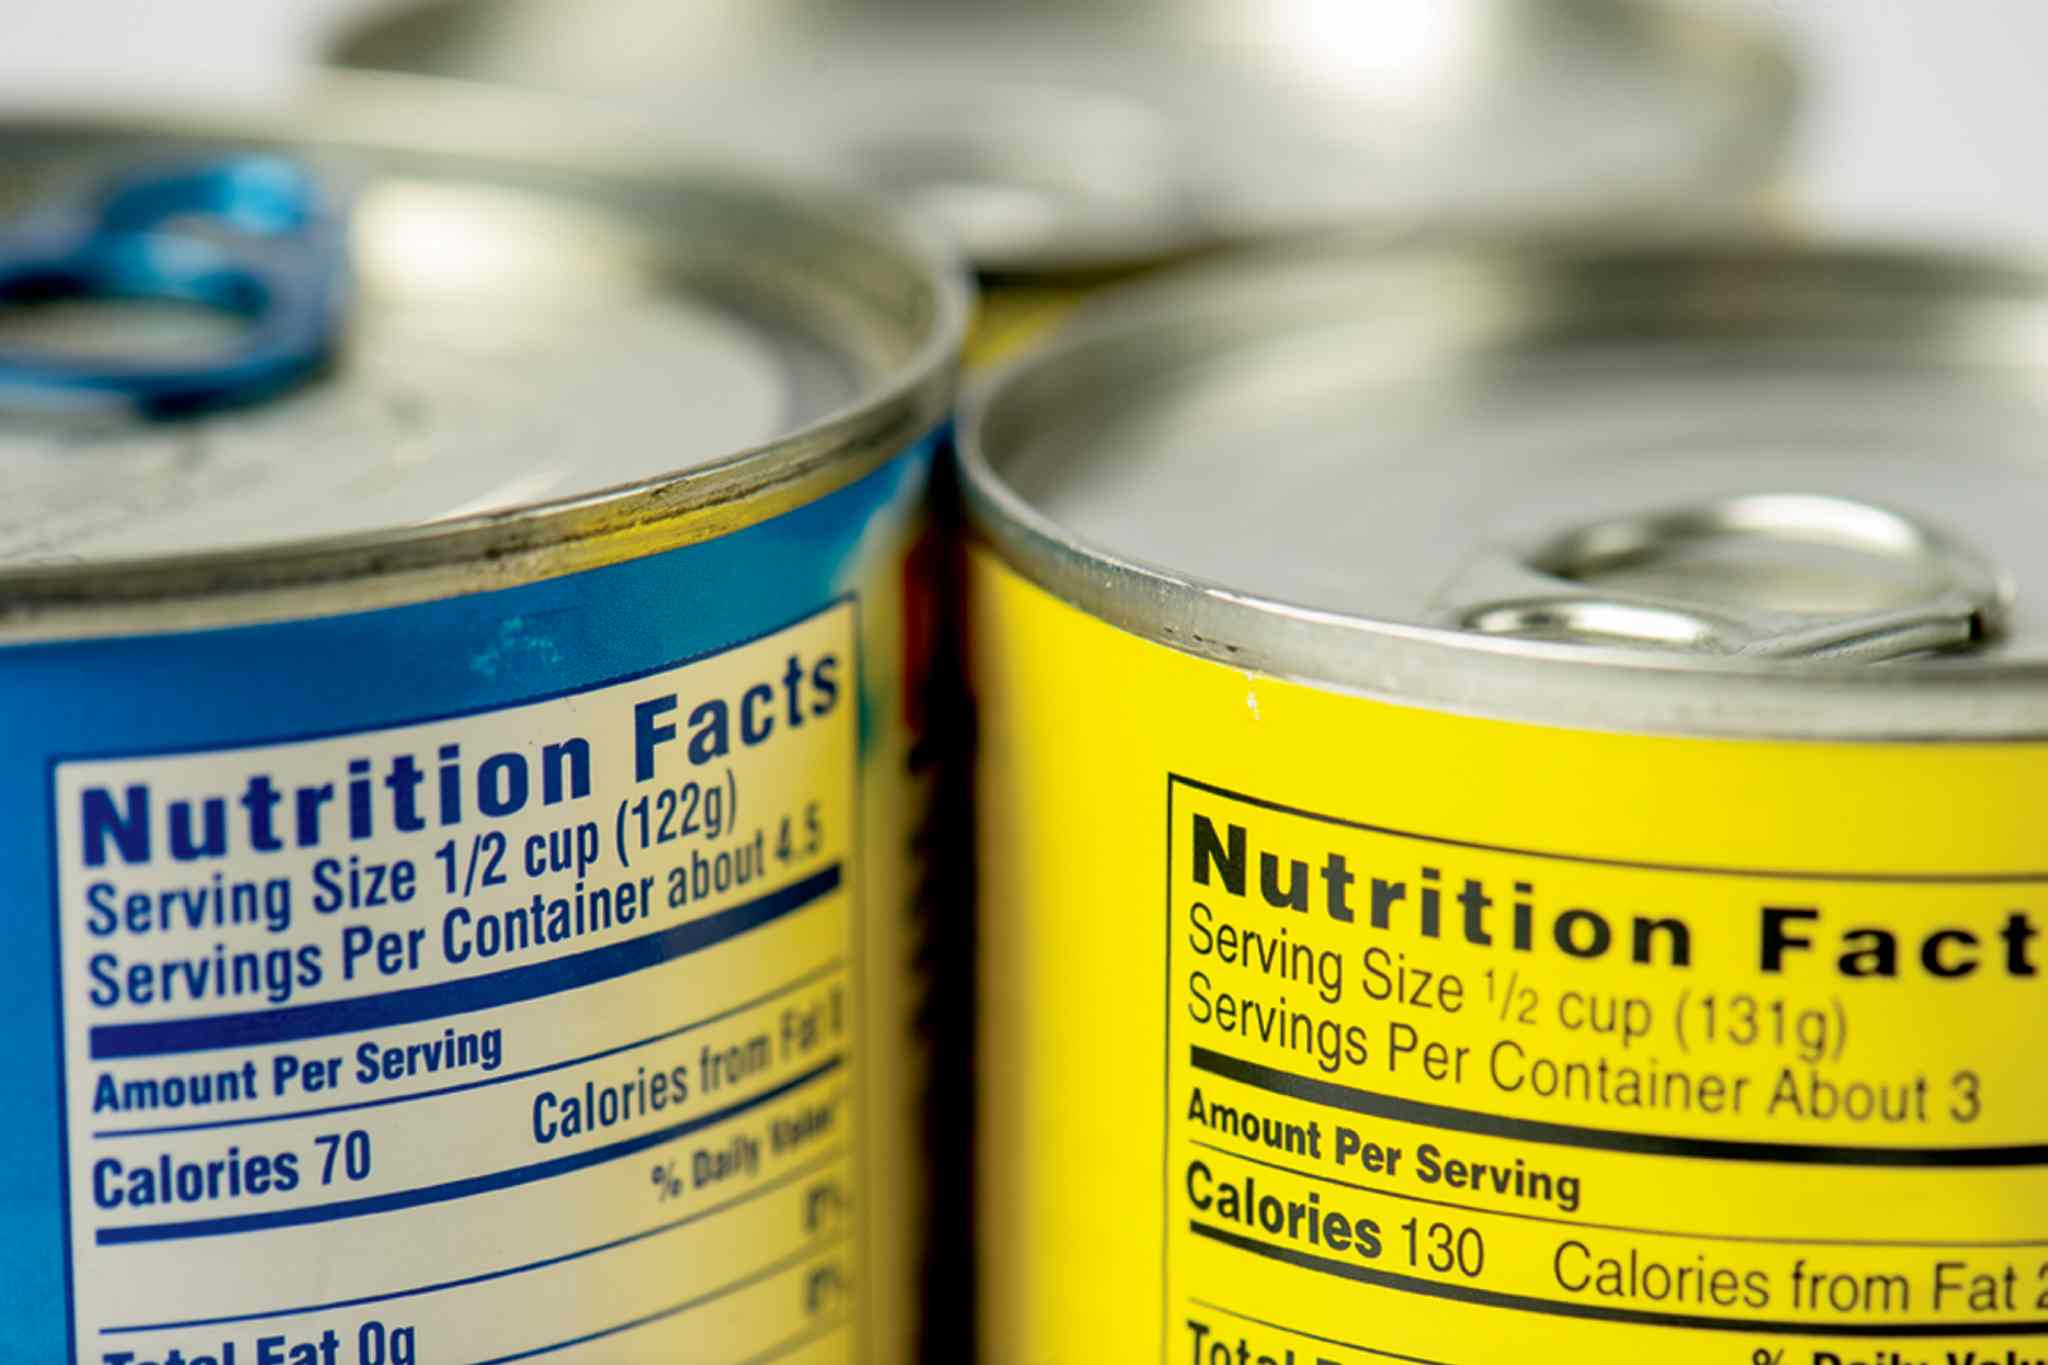 Canned food items and dry goods are distributed to thousands of Manitobans through the Manitoba Association of Food Bank members across the province.